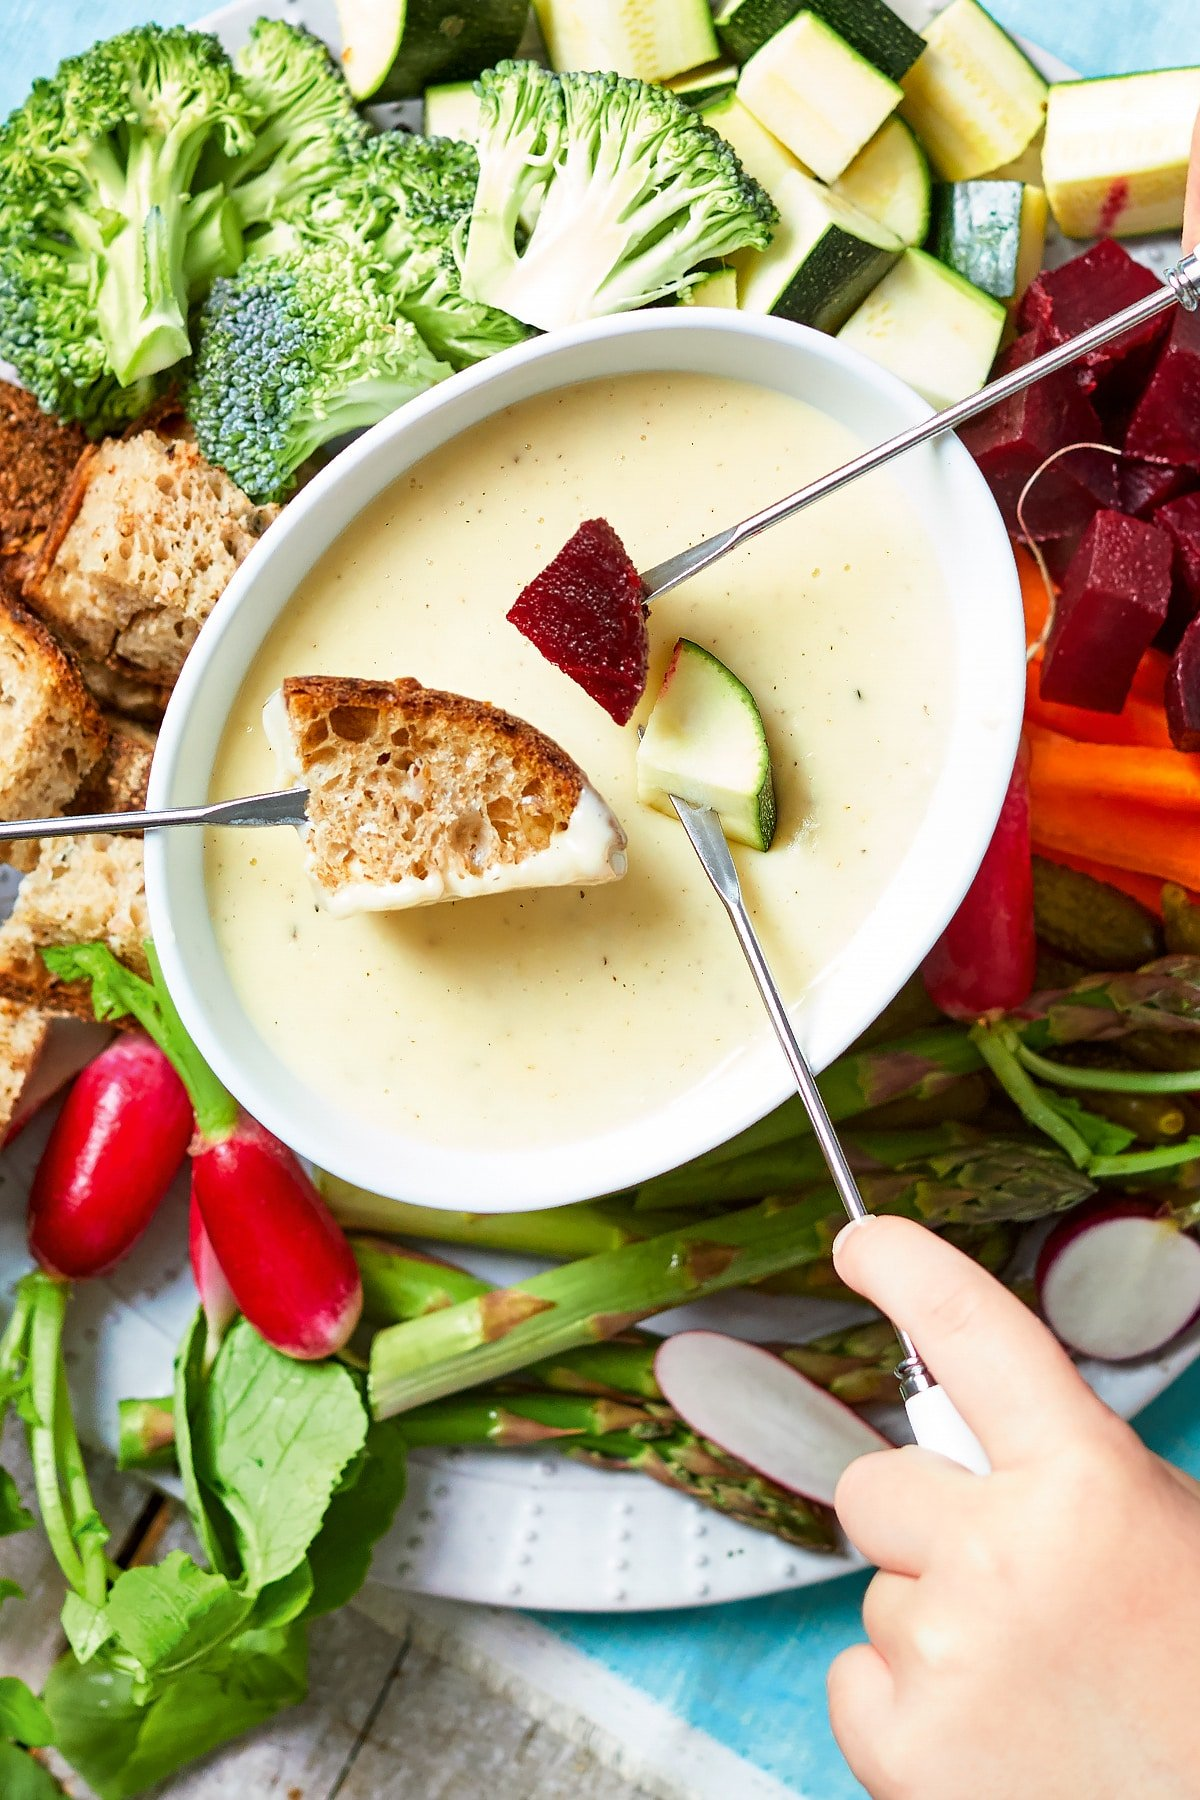 An overhead view of a vegetable fondue platter. A family of hands reach in with fondue forks to dip bread, beetroot, courgette into cheese sauce.